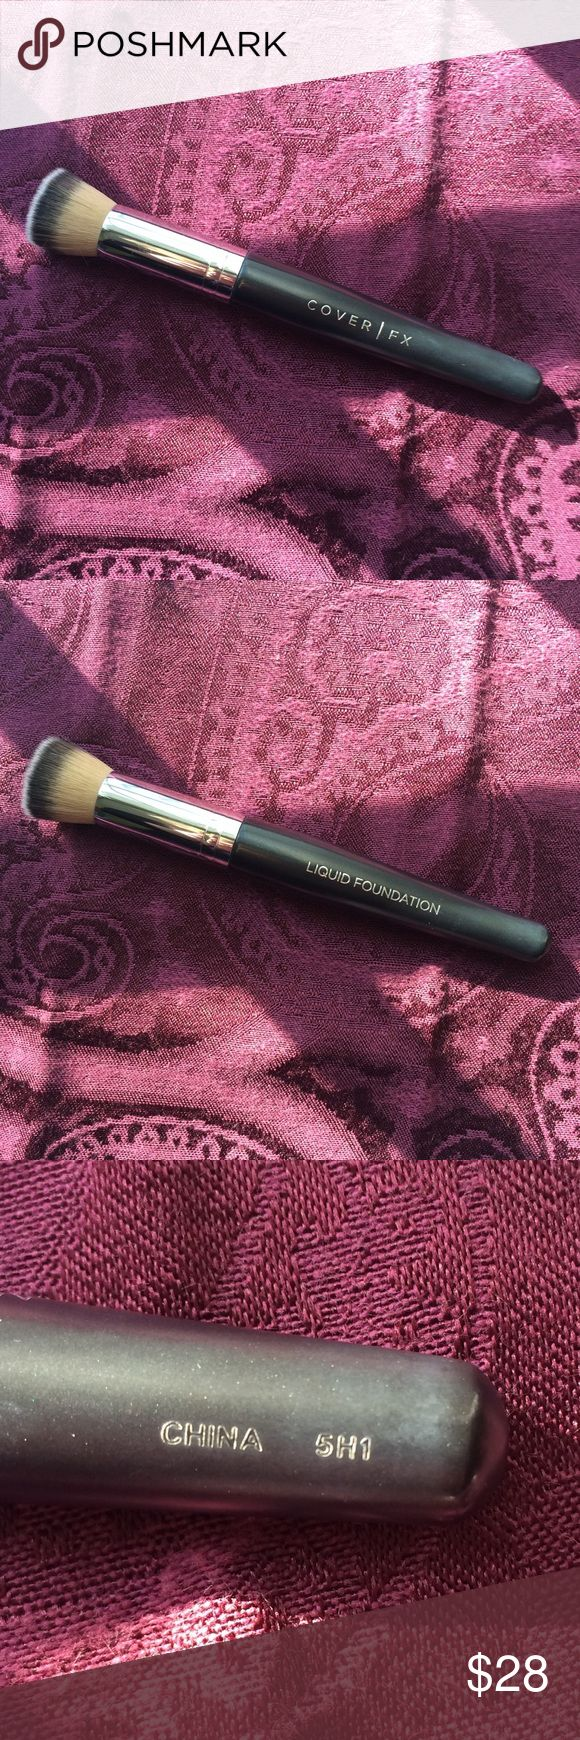 Cover FX Liquid Foundation Brush Cover fx, Cover fx